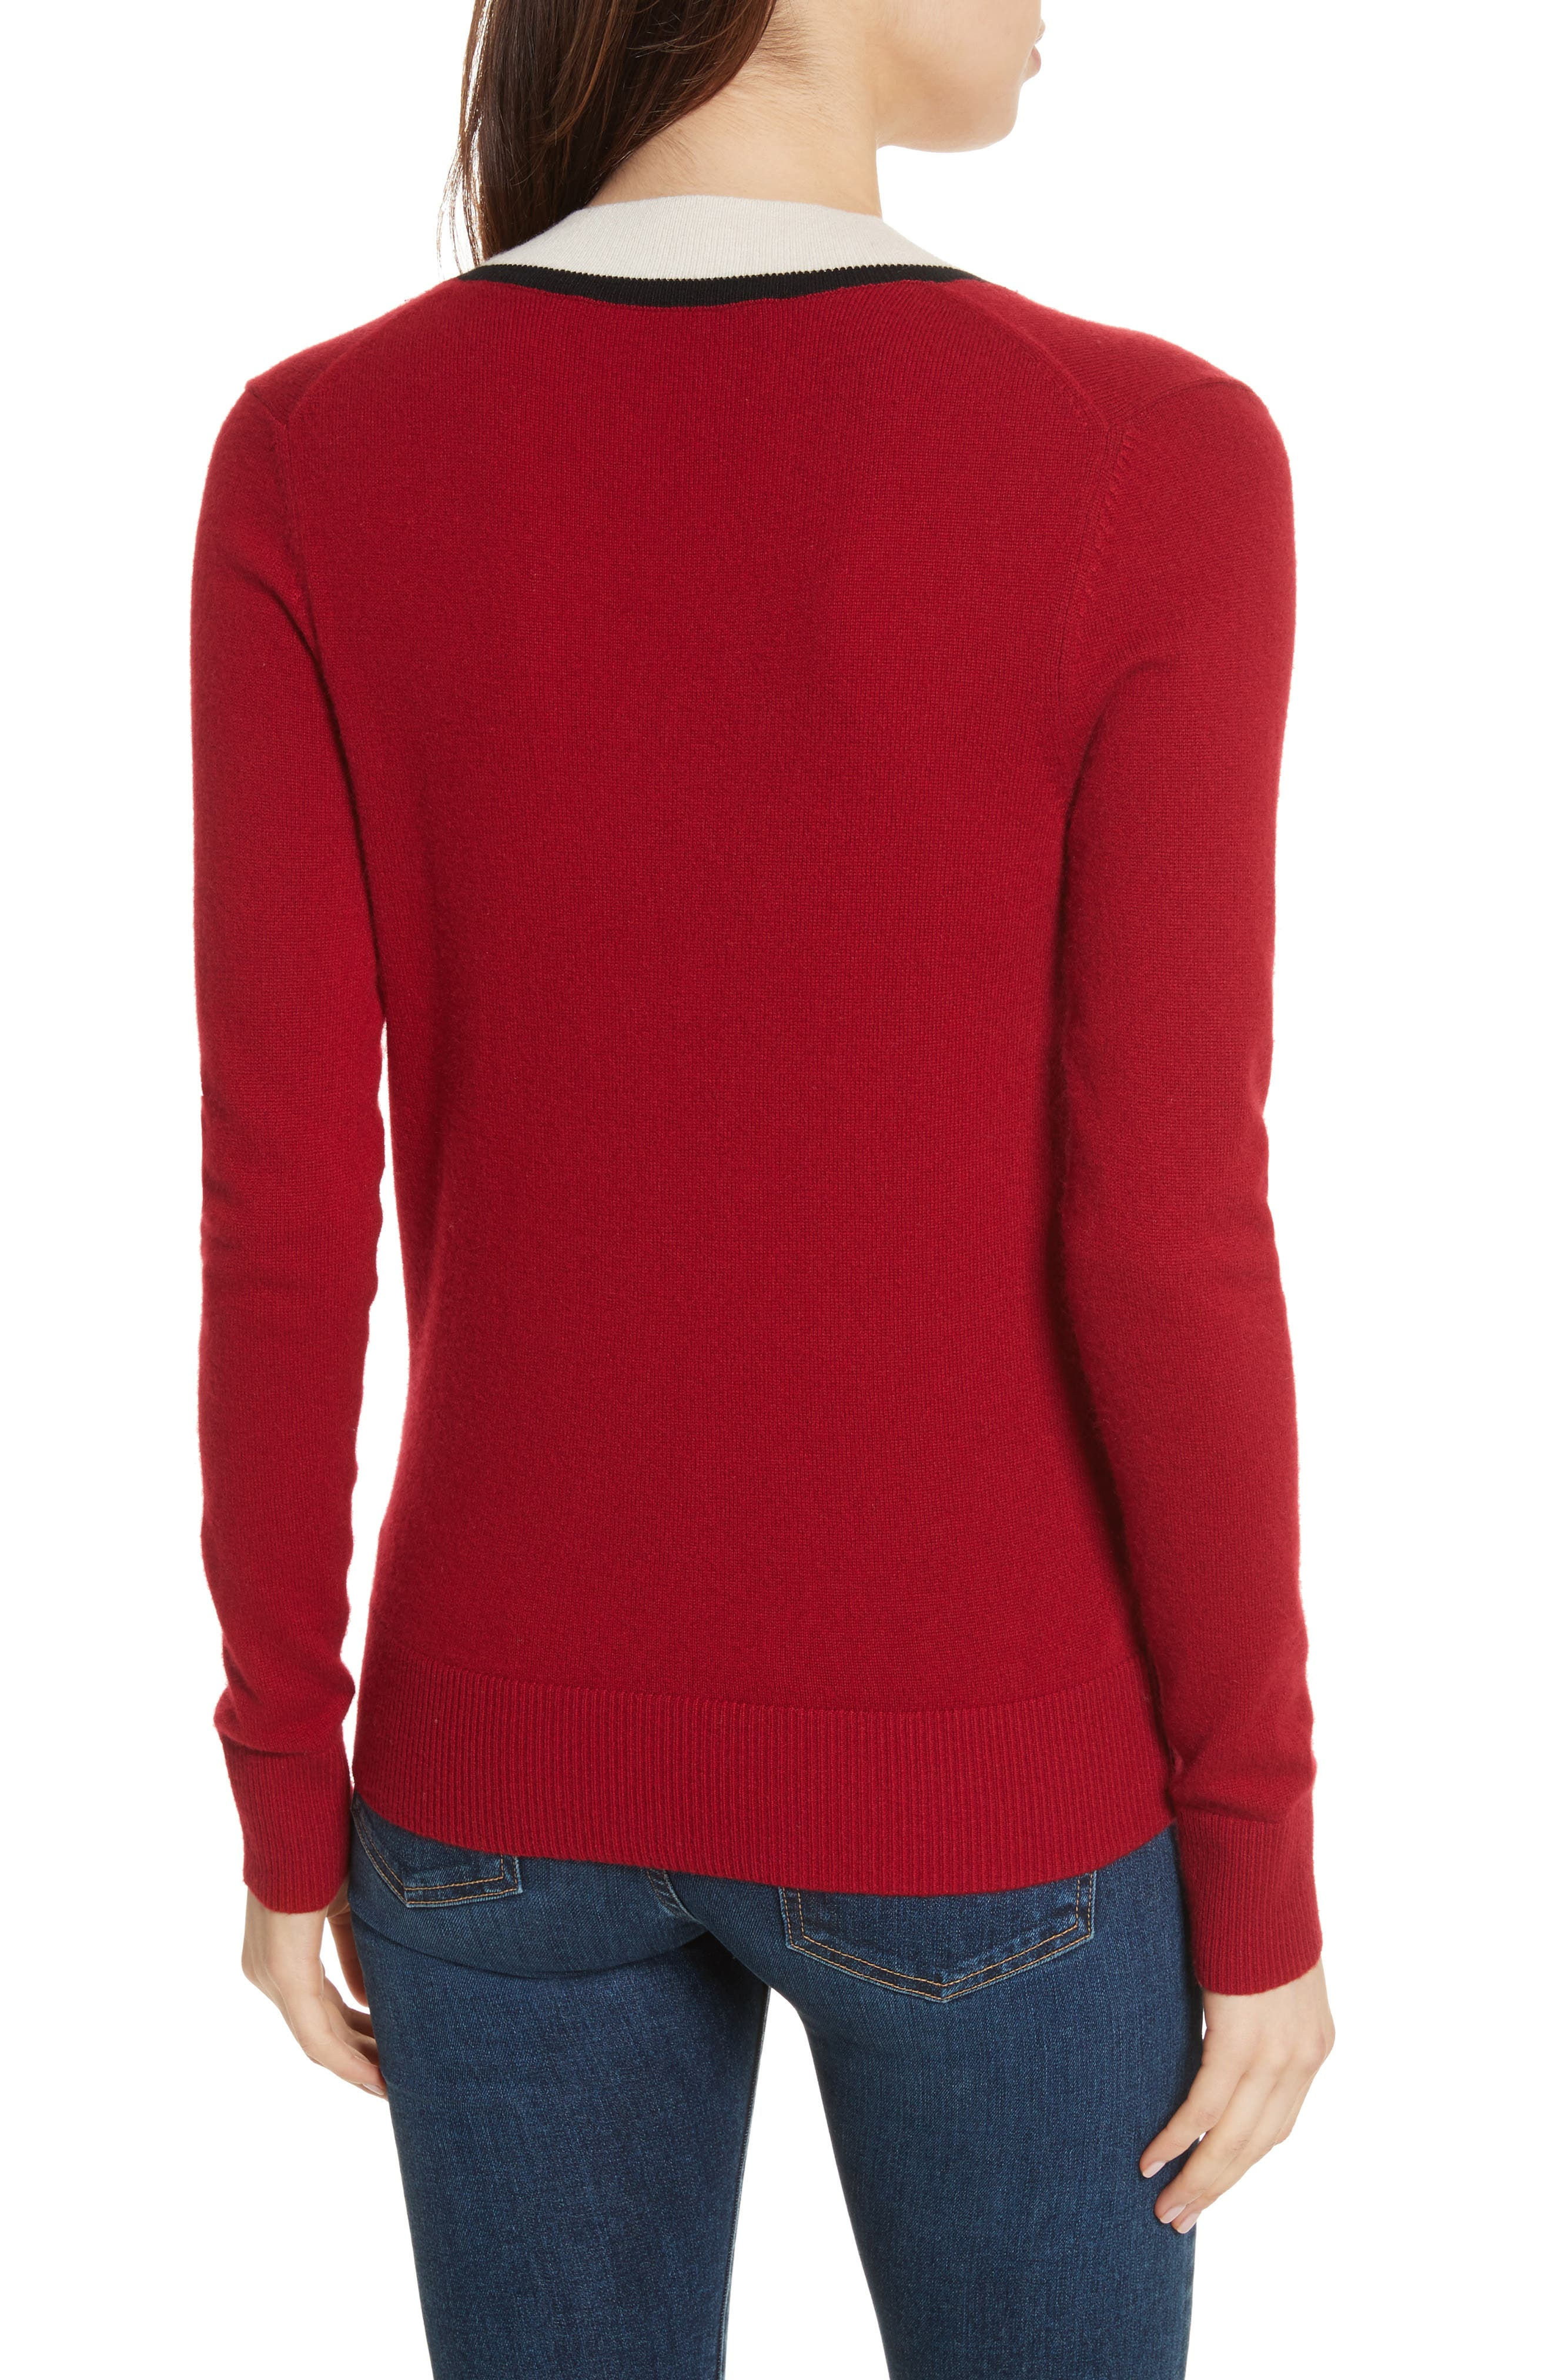 Barrett Cashmere Sweater,                             Alternate thumbnail 3, color,